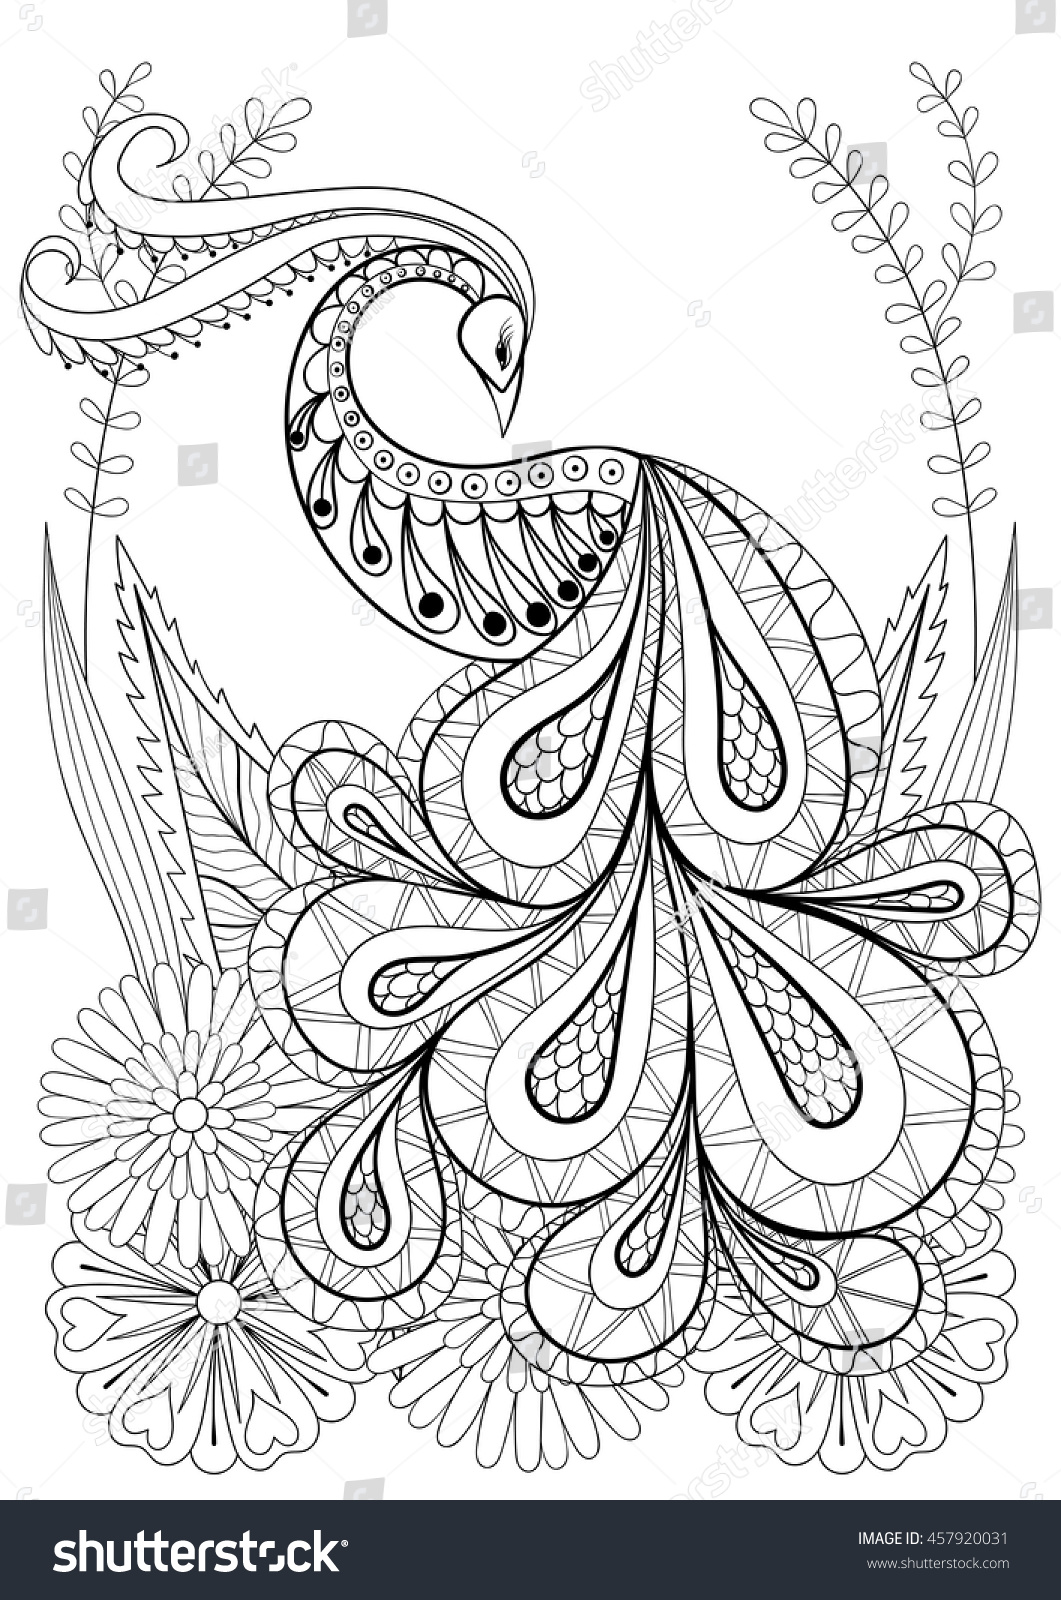 zentangle stylized peacock flowers hand drawn stock vector